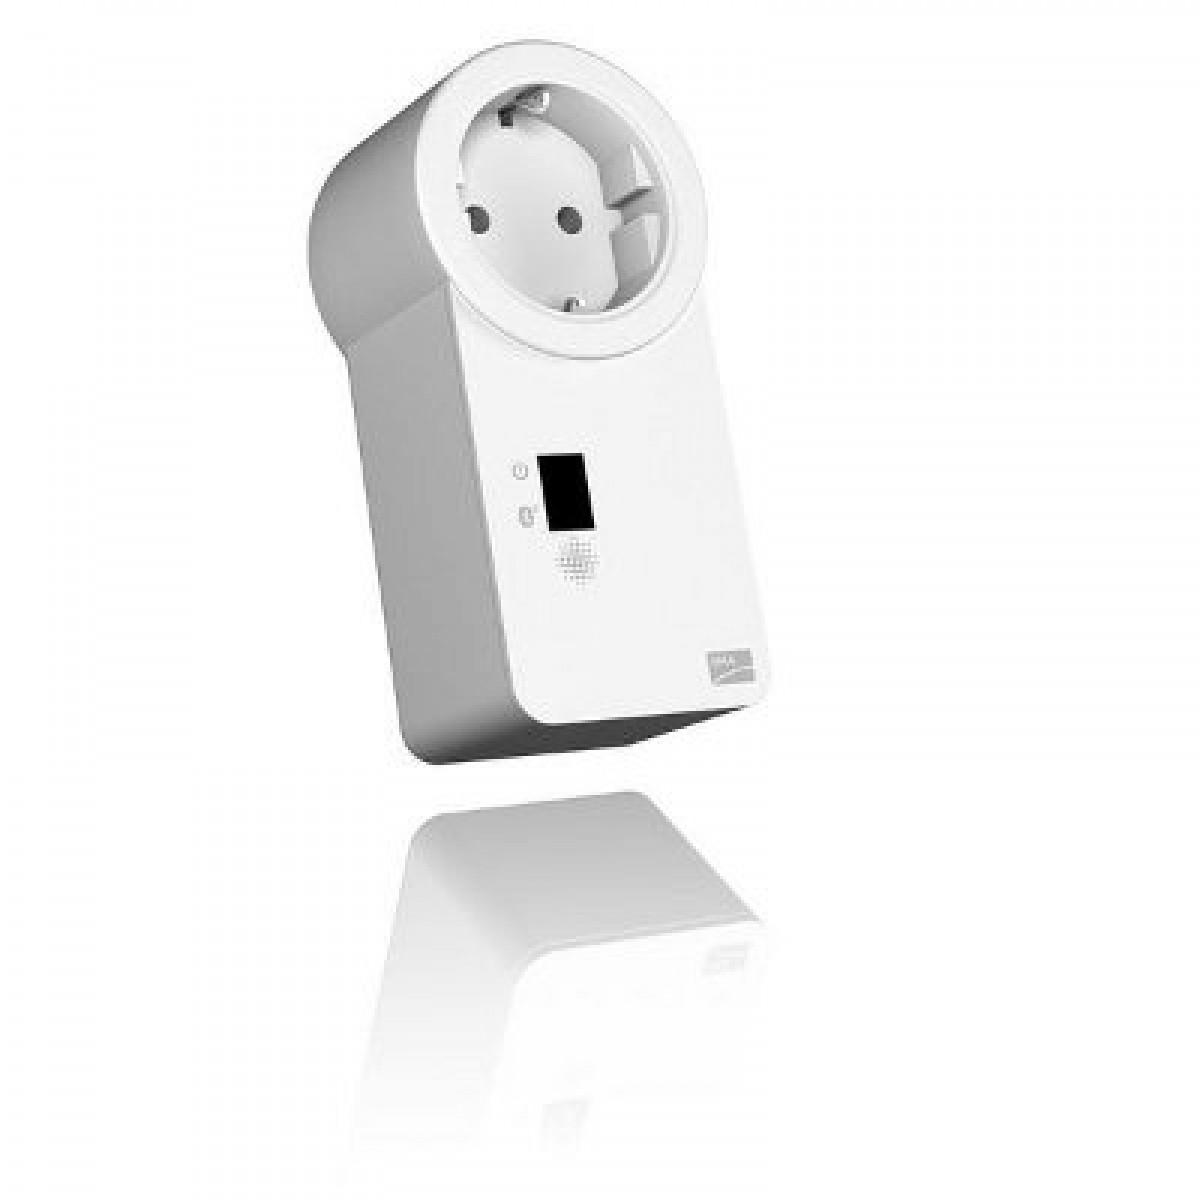 SMA radio socket with Bluetooth BT-SOCKET-10